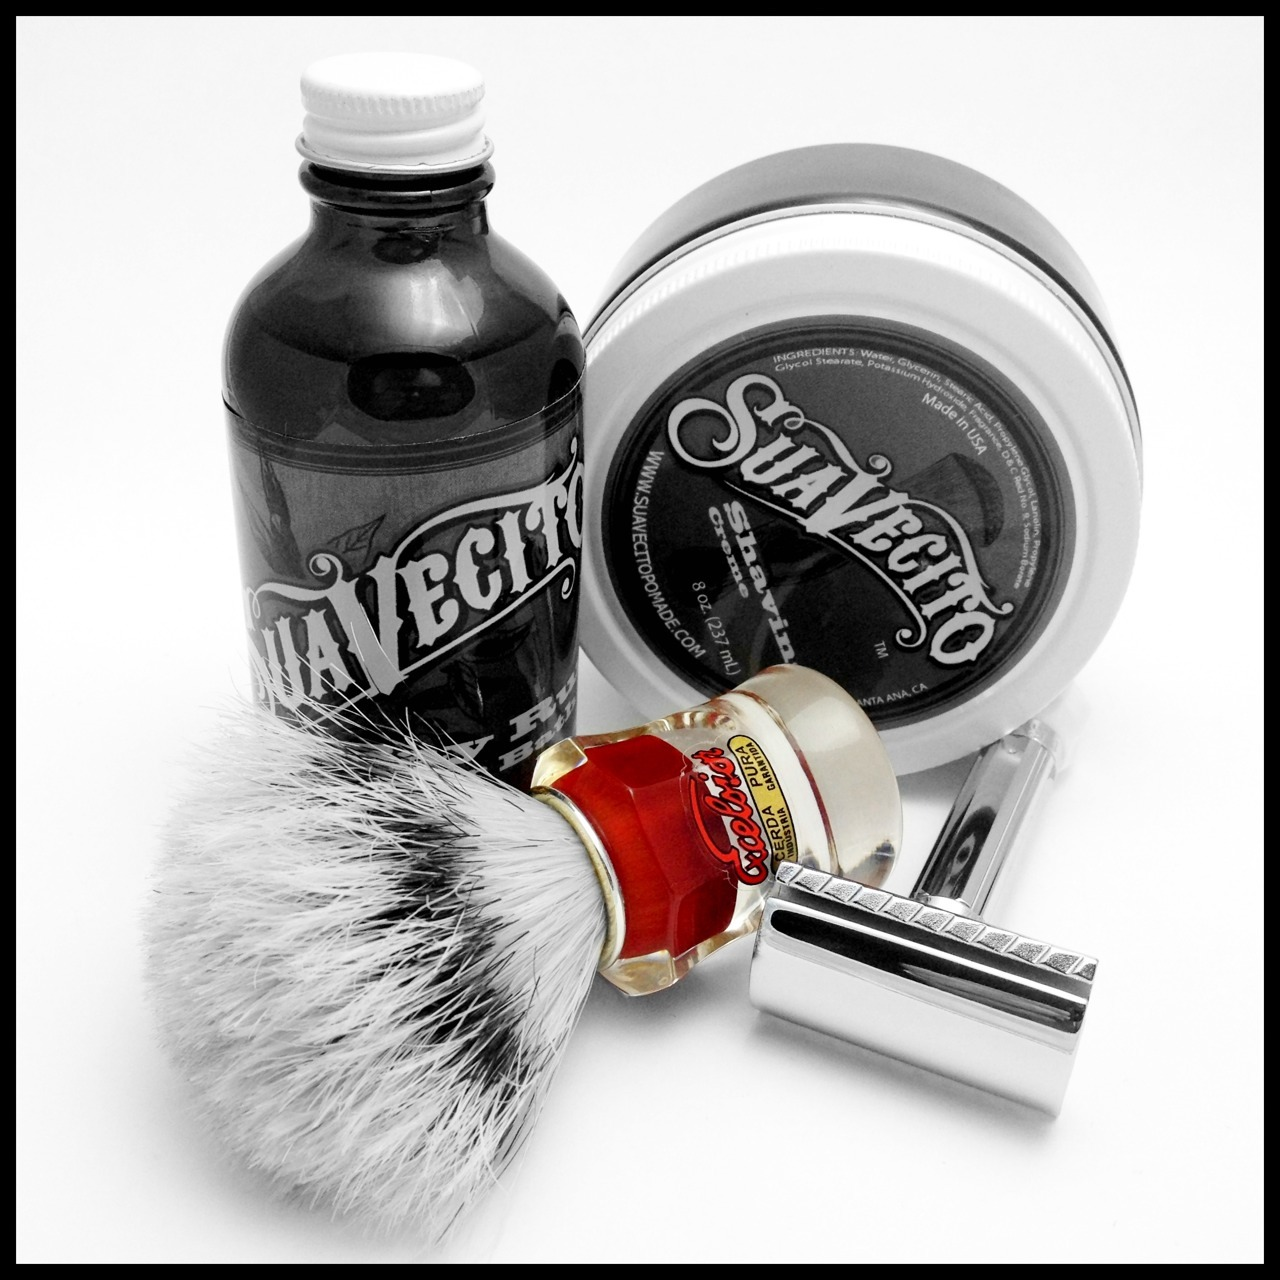 afeitadodiario:  Afeitado del día / Shaving of day. Semogue 830 brush / Suavecito shaving creme / Merkur Progress safety razor + Rapira blade / Suavecito Bay Rum aftershave